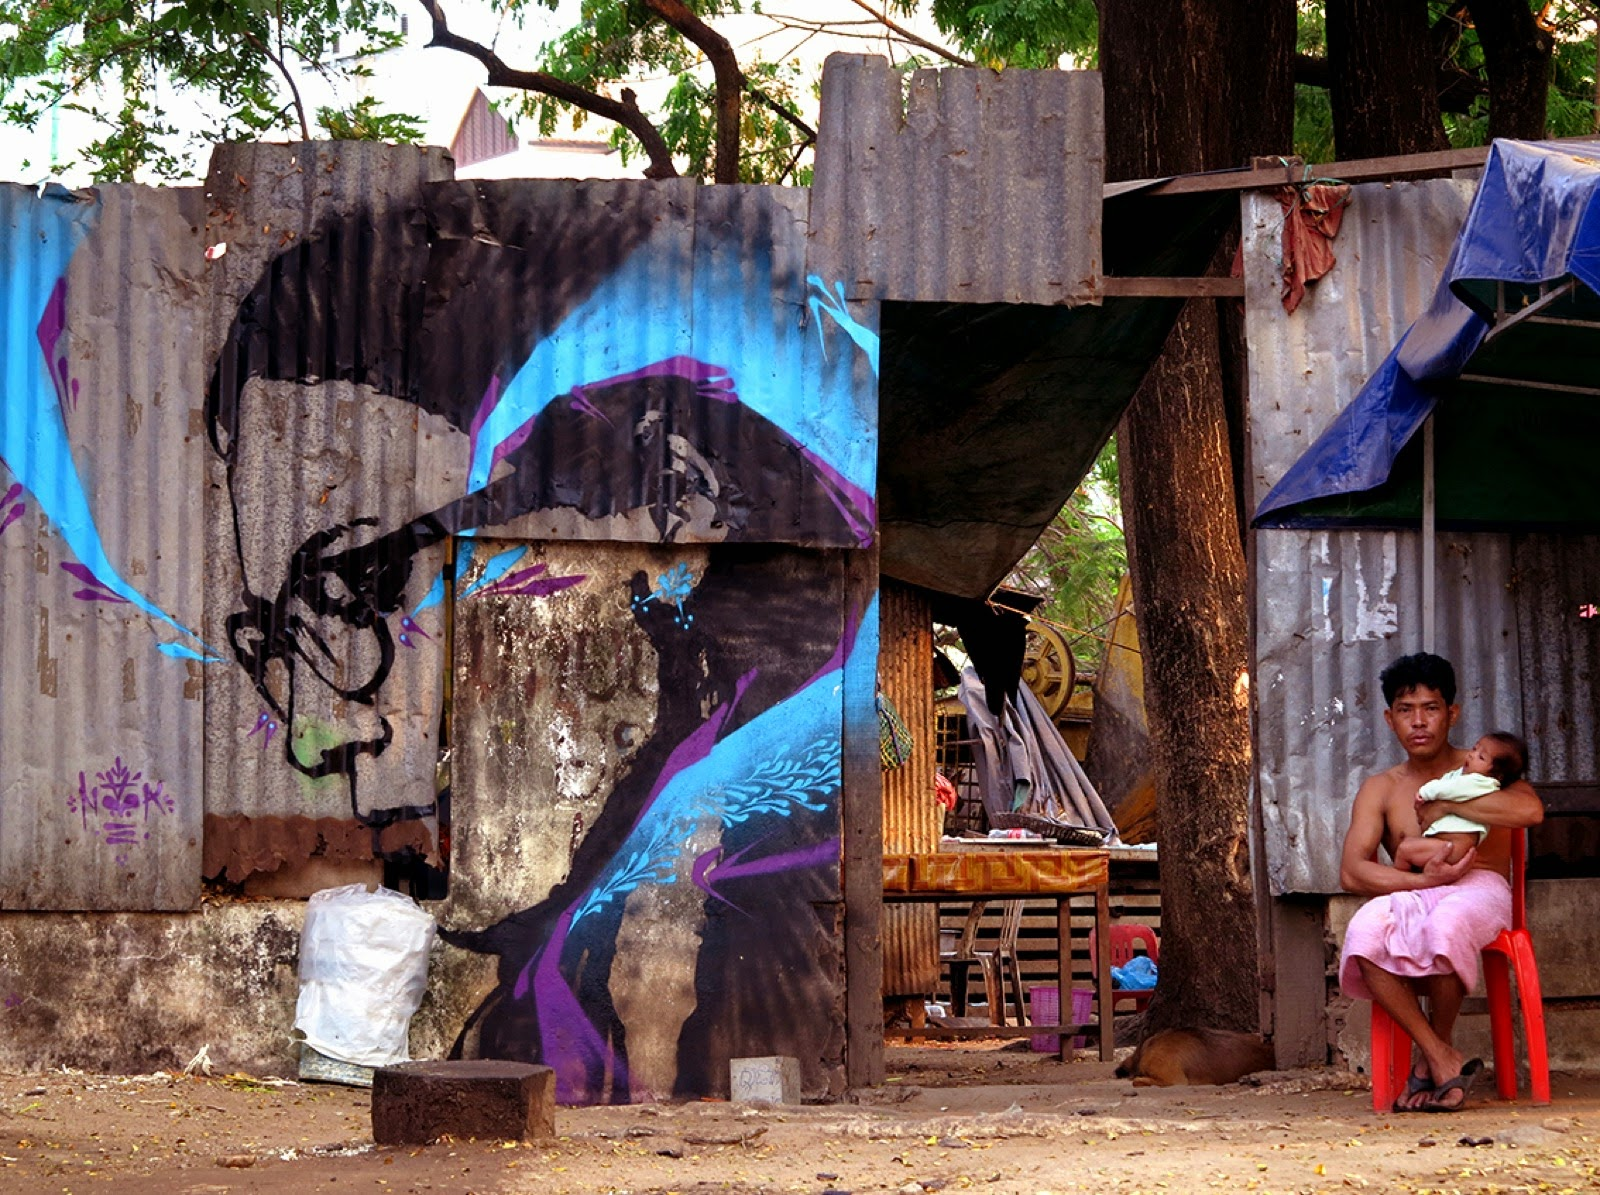 Stinkfish brings new pieces to the streets of Phnom Penh & Siem Reap in Cambodia